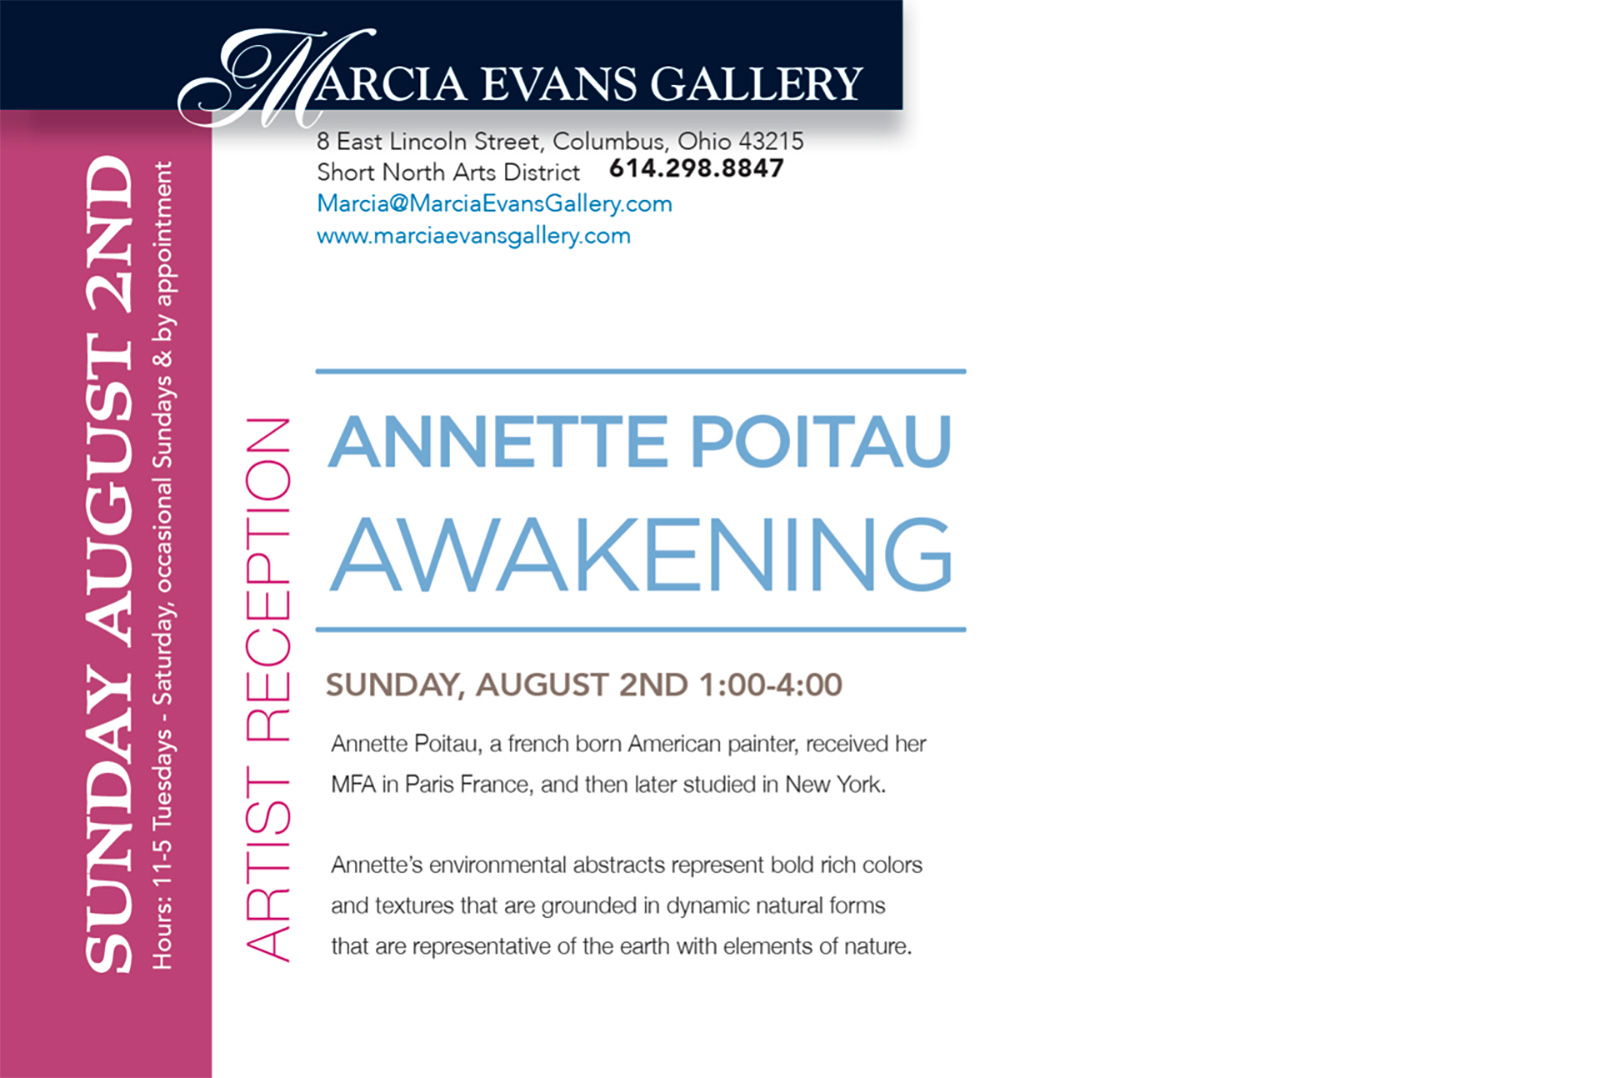 Annette Poitau Awakening, New Abstracts Gallery Show in the Short North